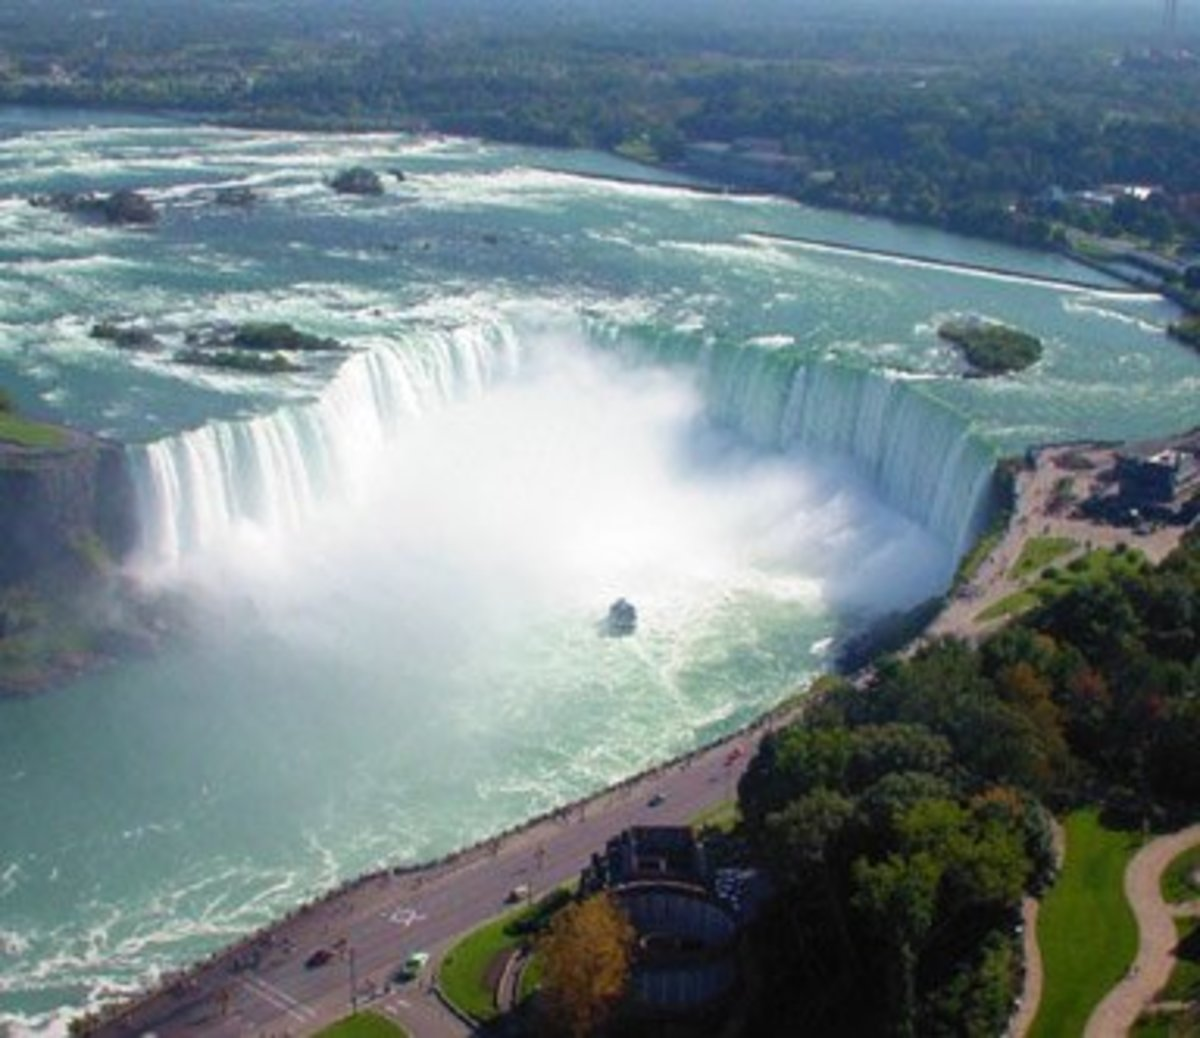 The Niagara River and Niagara Falls